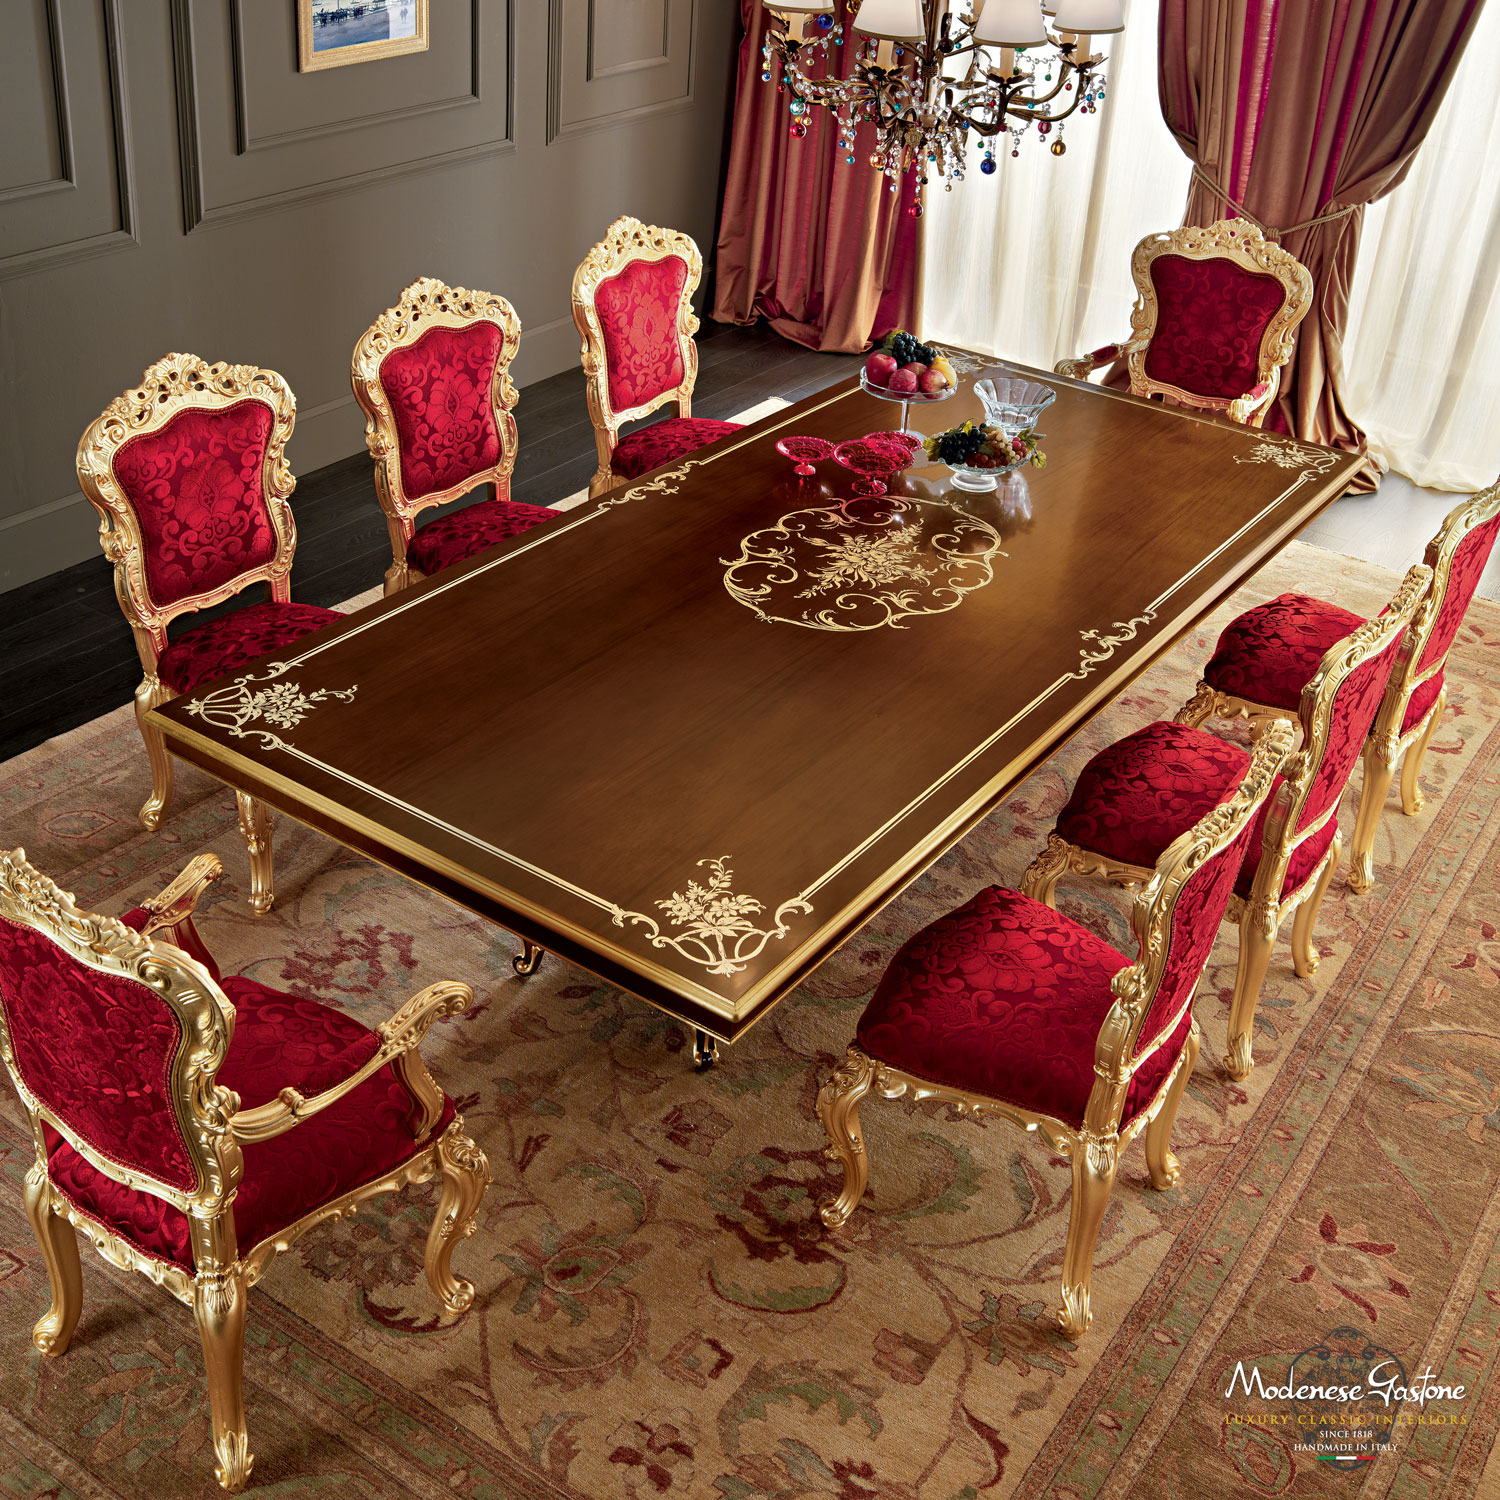 Dining-table-walnut-gold-leaf-inlays-handmade-in-Italy-Villa-Venezia-collection-Modenese-Gastone